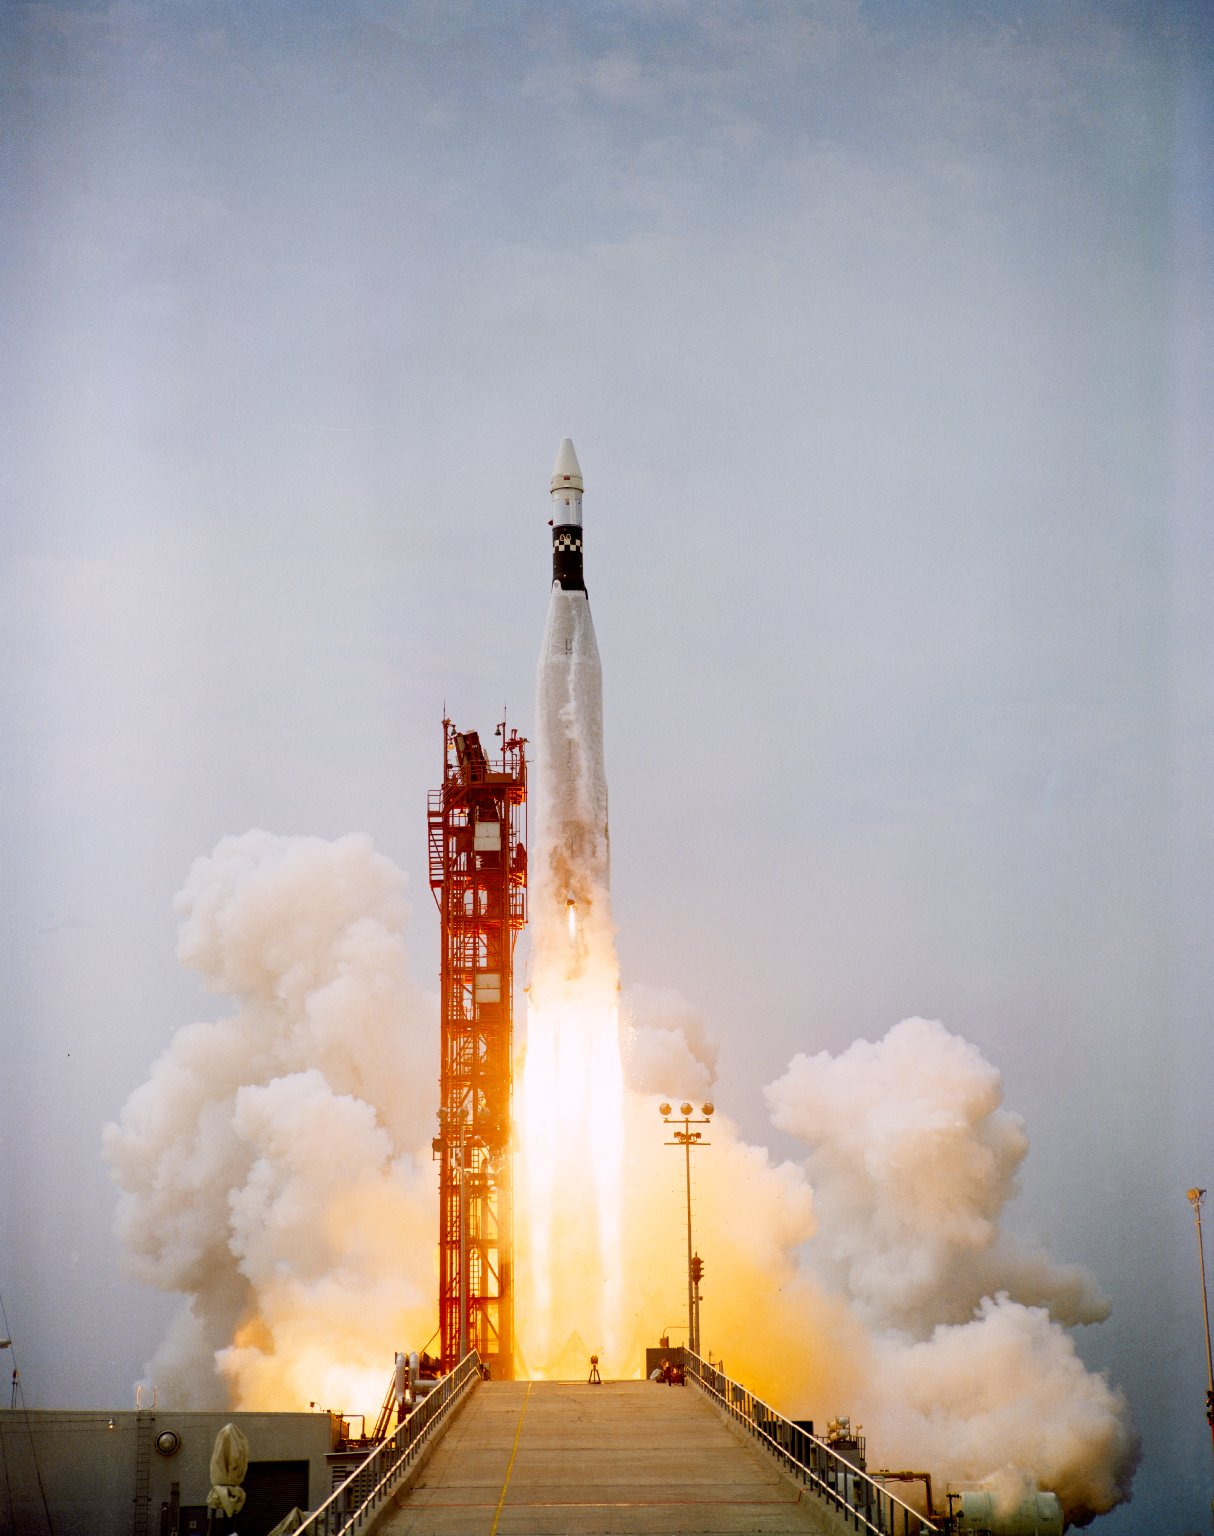 ATDA atop Atlas launch vehicle launched from Kennedy Space Center